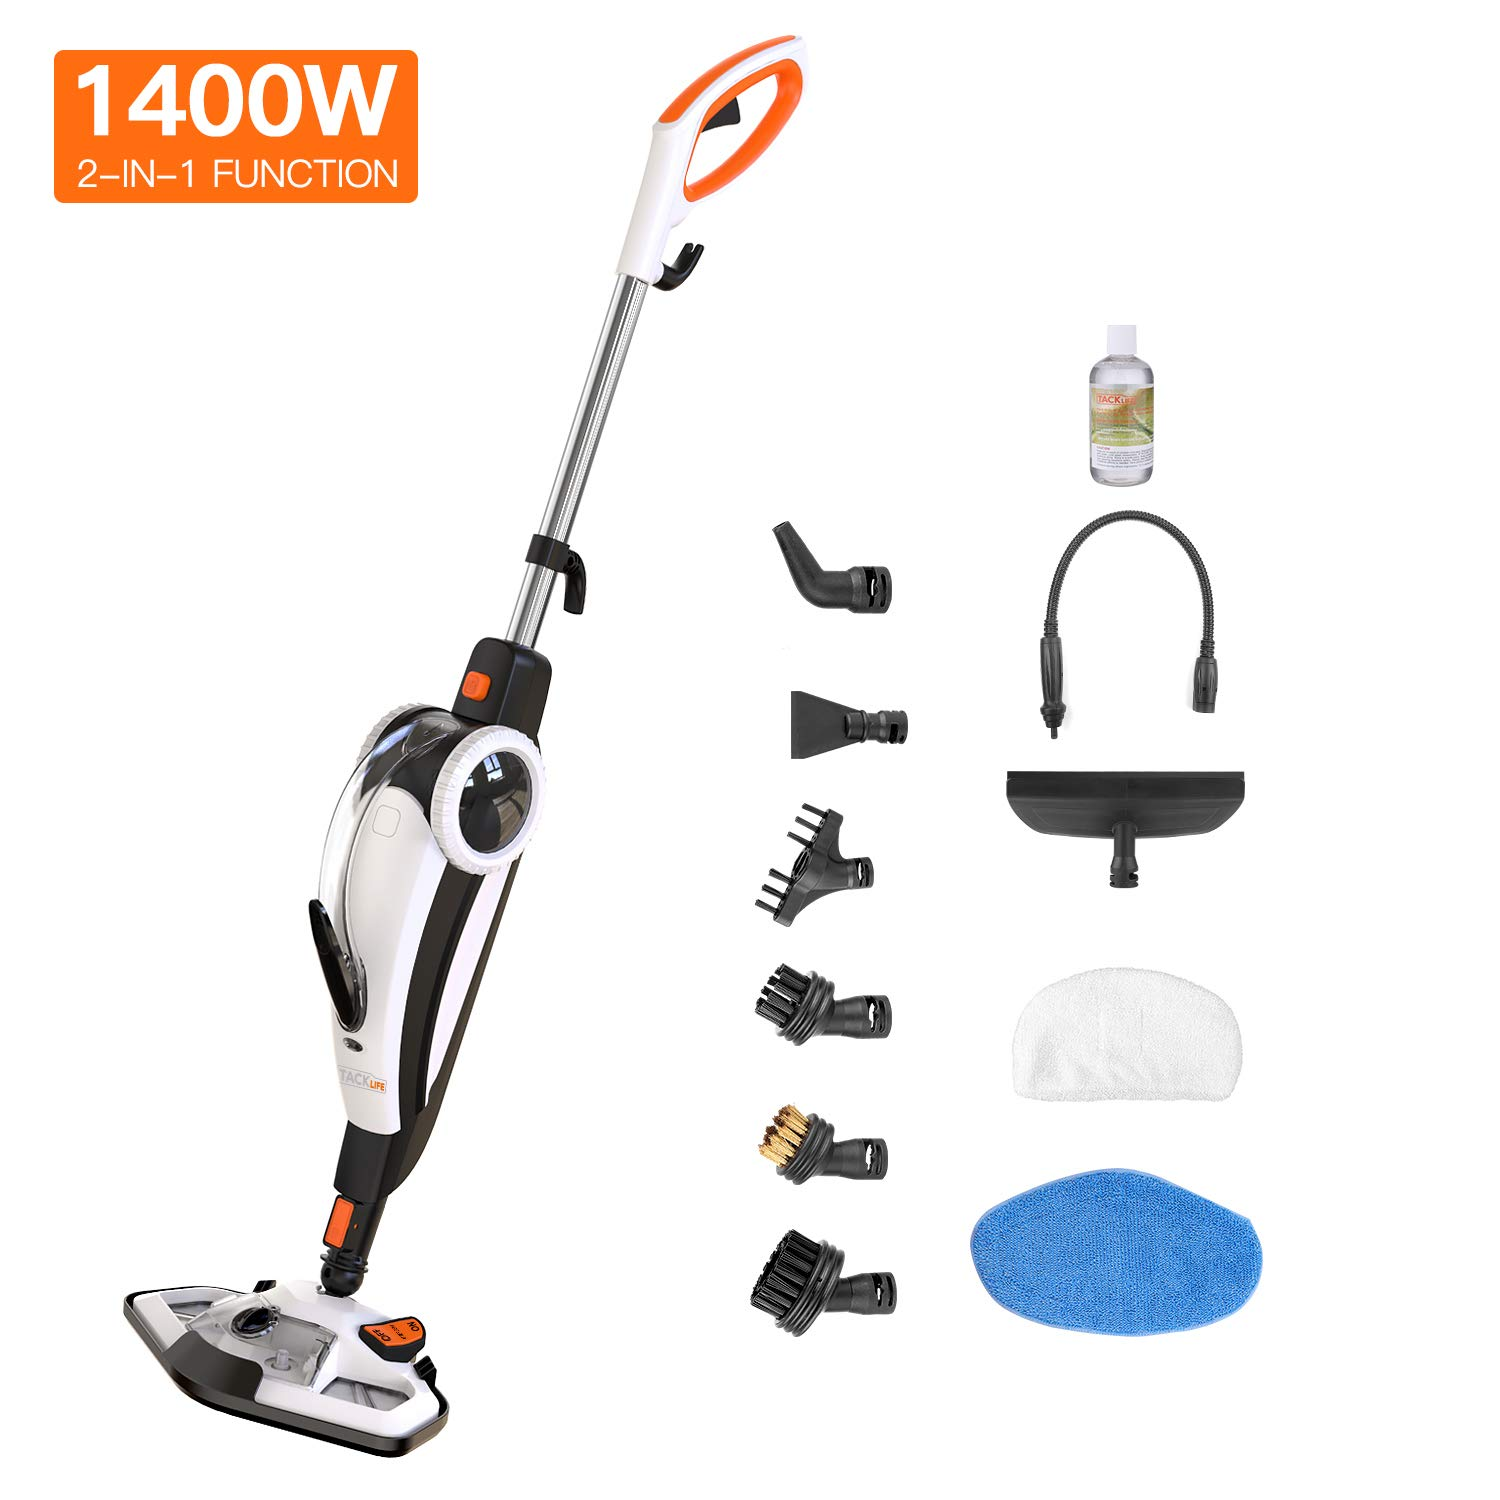 TACKLIFE HSM01A Steam Mop, 2 in 1 Floor Cleaner and Hand-held Steam Cleaner, Suit for Hardwood, Tile, Grout, Laminate, White+Black+Orange by TACKLIFE